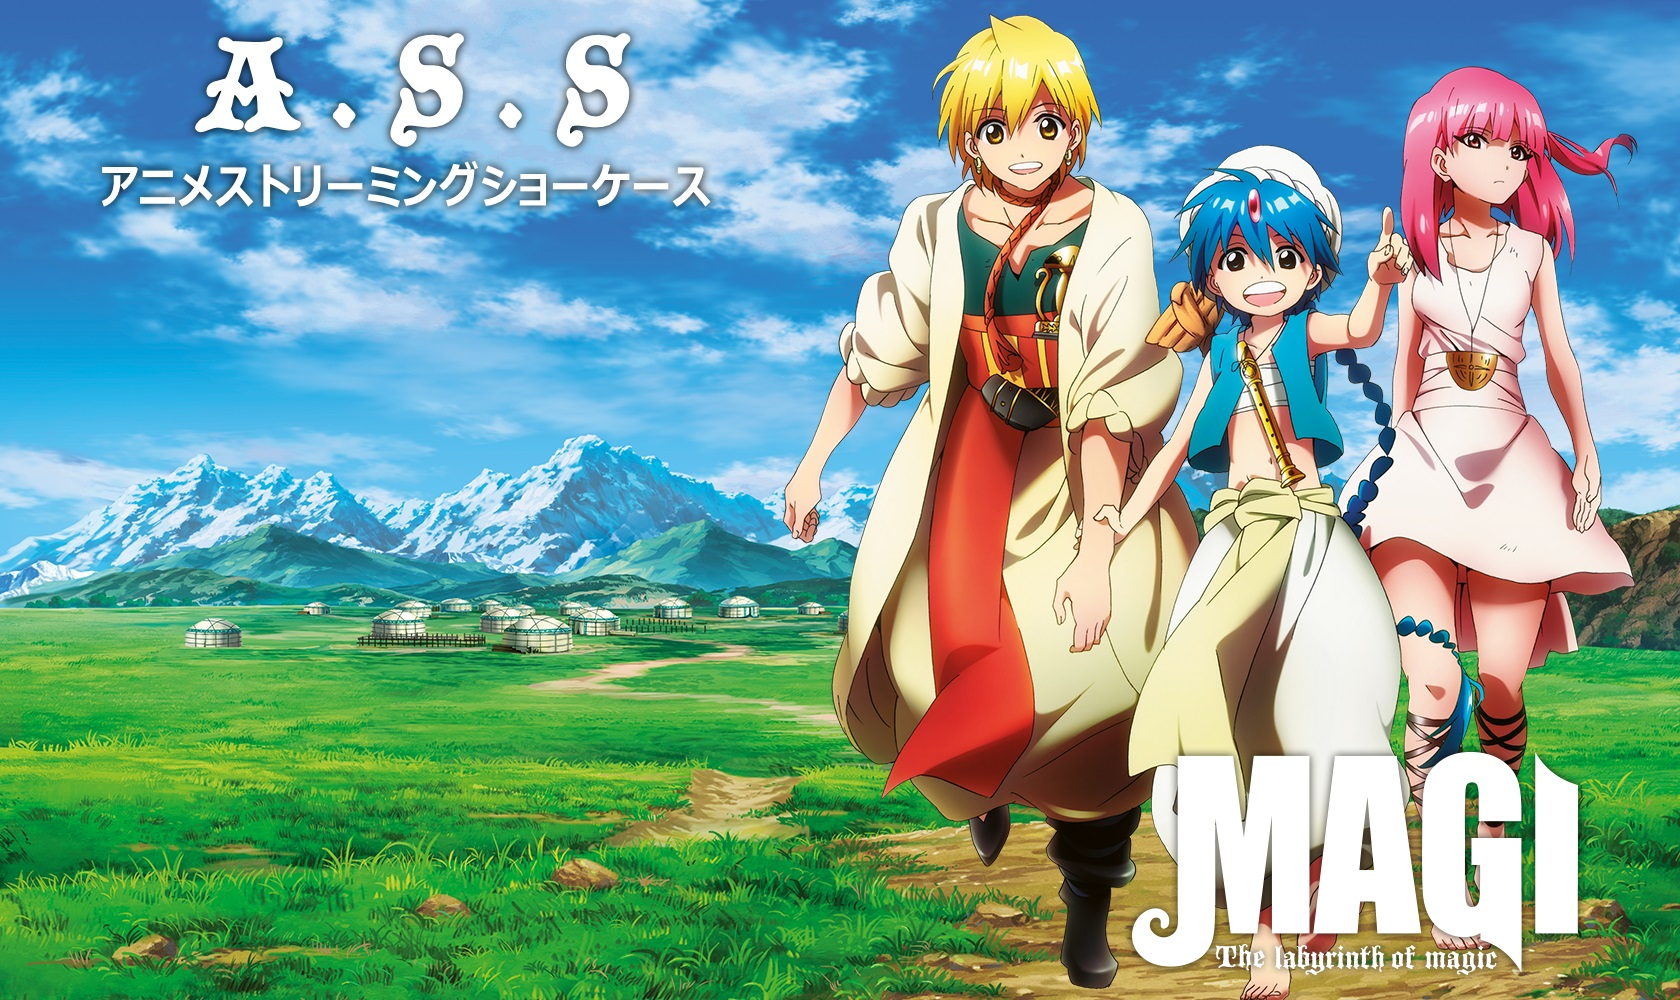 Magi, Magi: The Labyrinth of Magic, Shinobu Ohtaka, A-1 Pictures, anime, manga, YOutbe, anime streaming showcase, A.S.S., ASS,